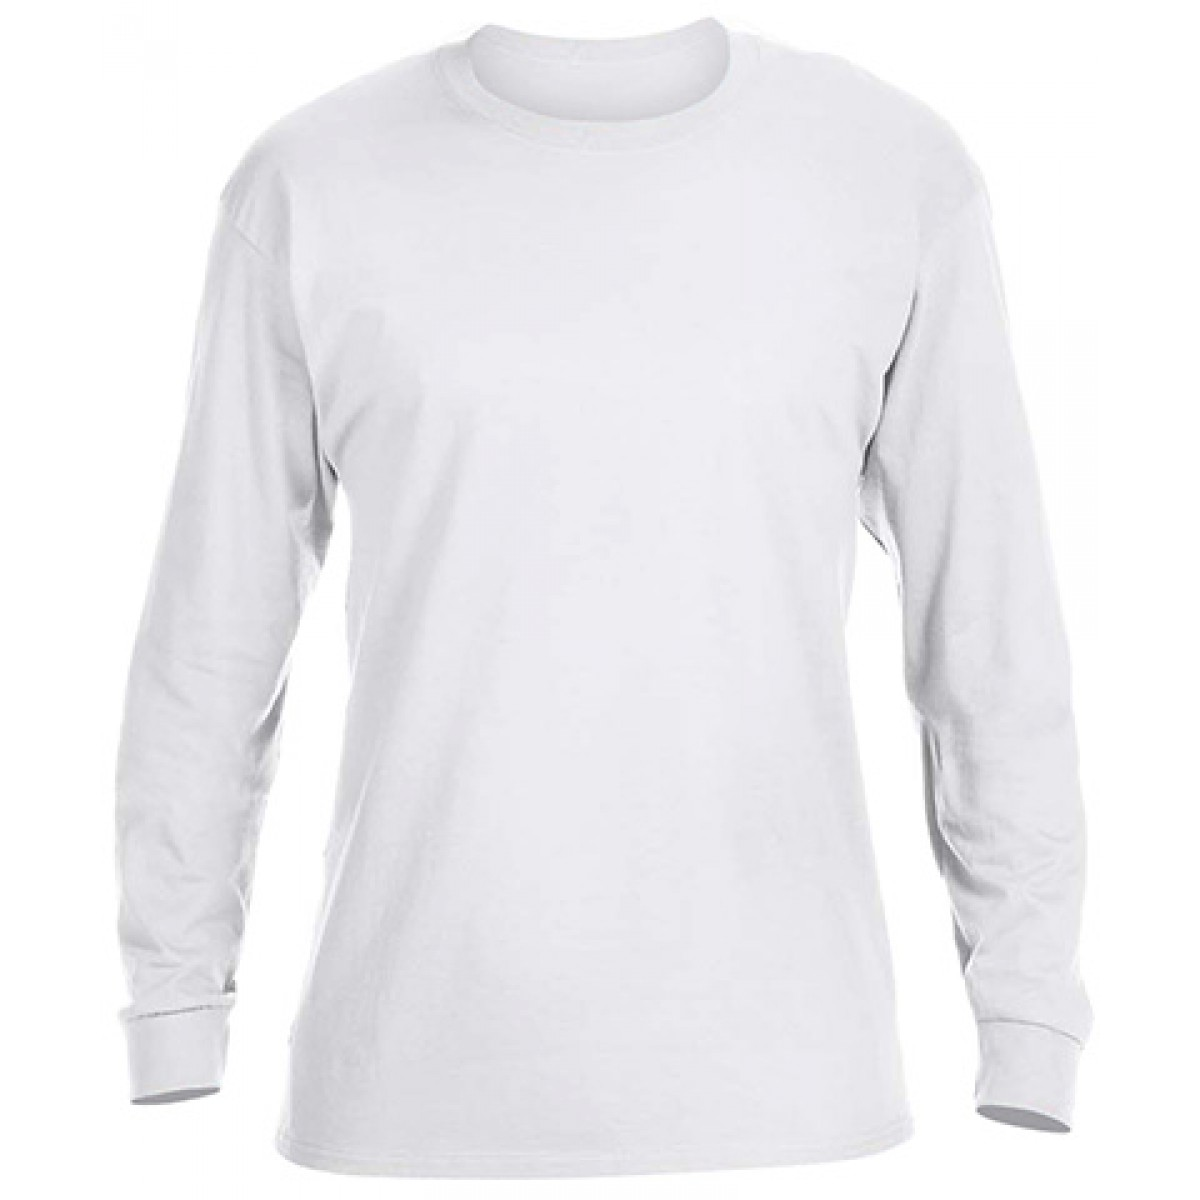 Heavy Cotton Long-Sleeve Adidas Shirt-White-2XL